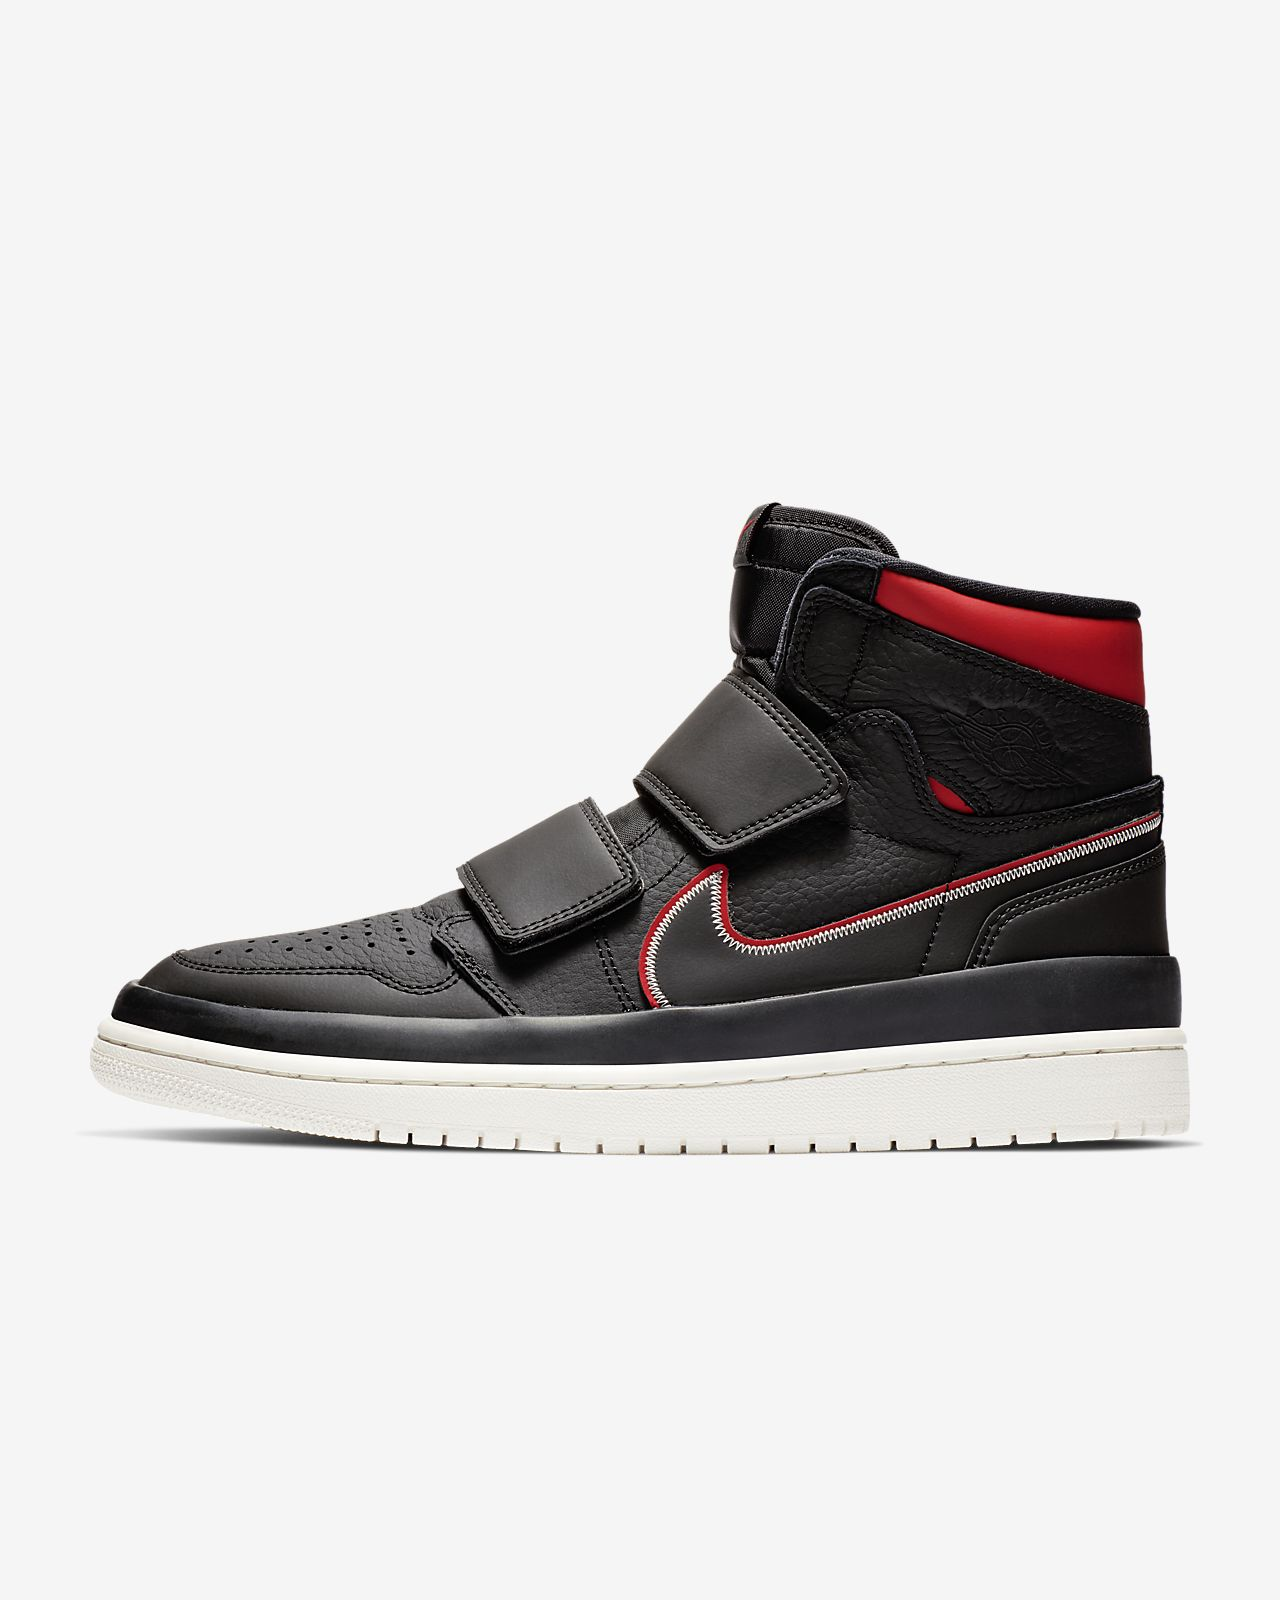 Air Jordan 1 Retro High Double Strap Herrenschuh